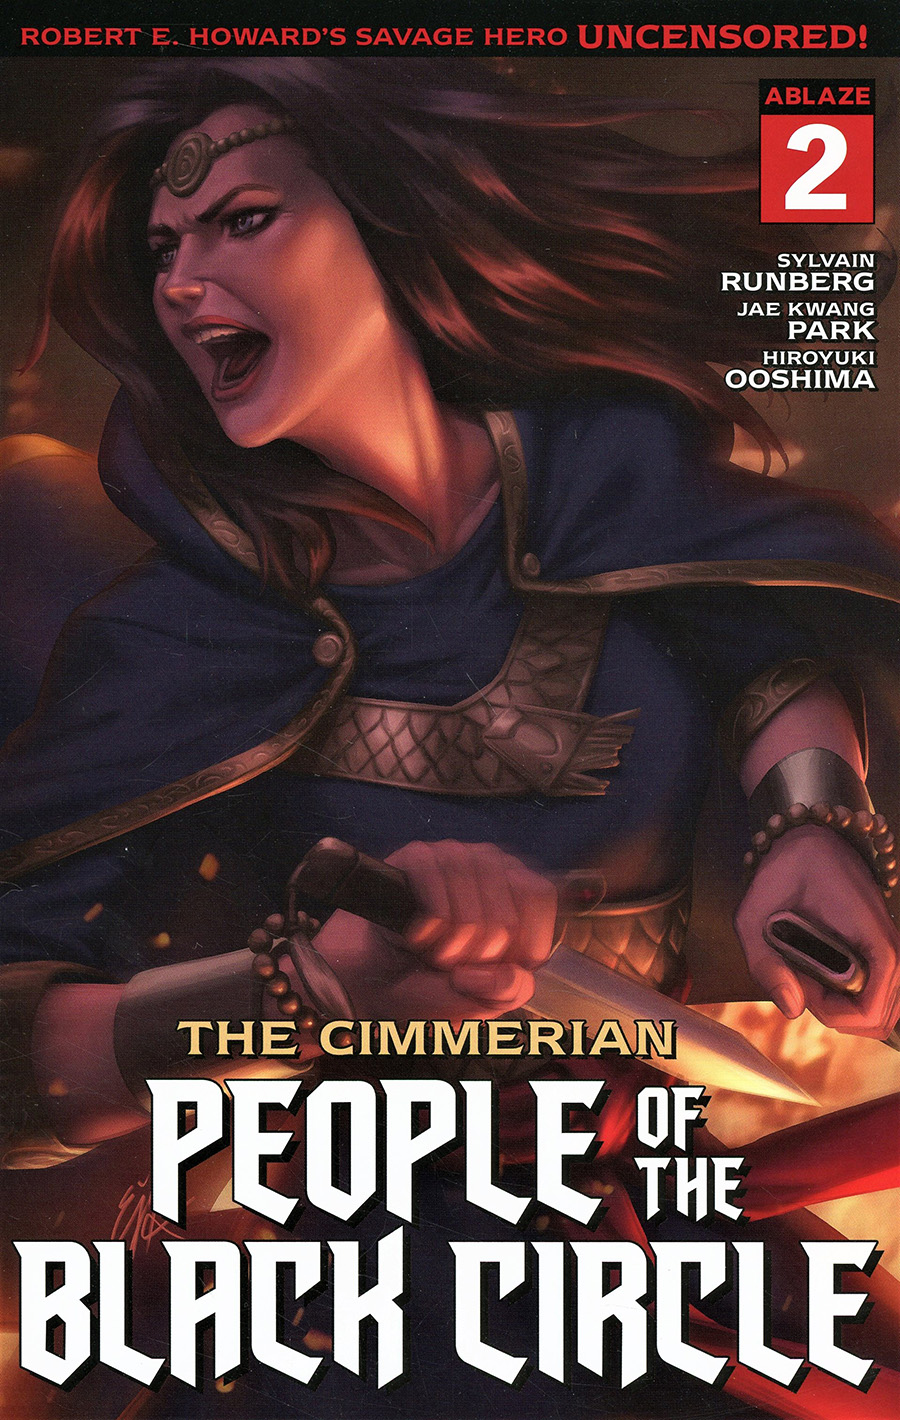 The Cimmerian: People of the Black Circle #2 (2020)